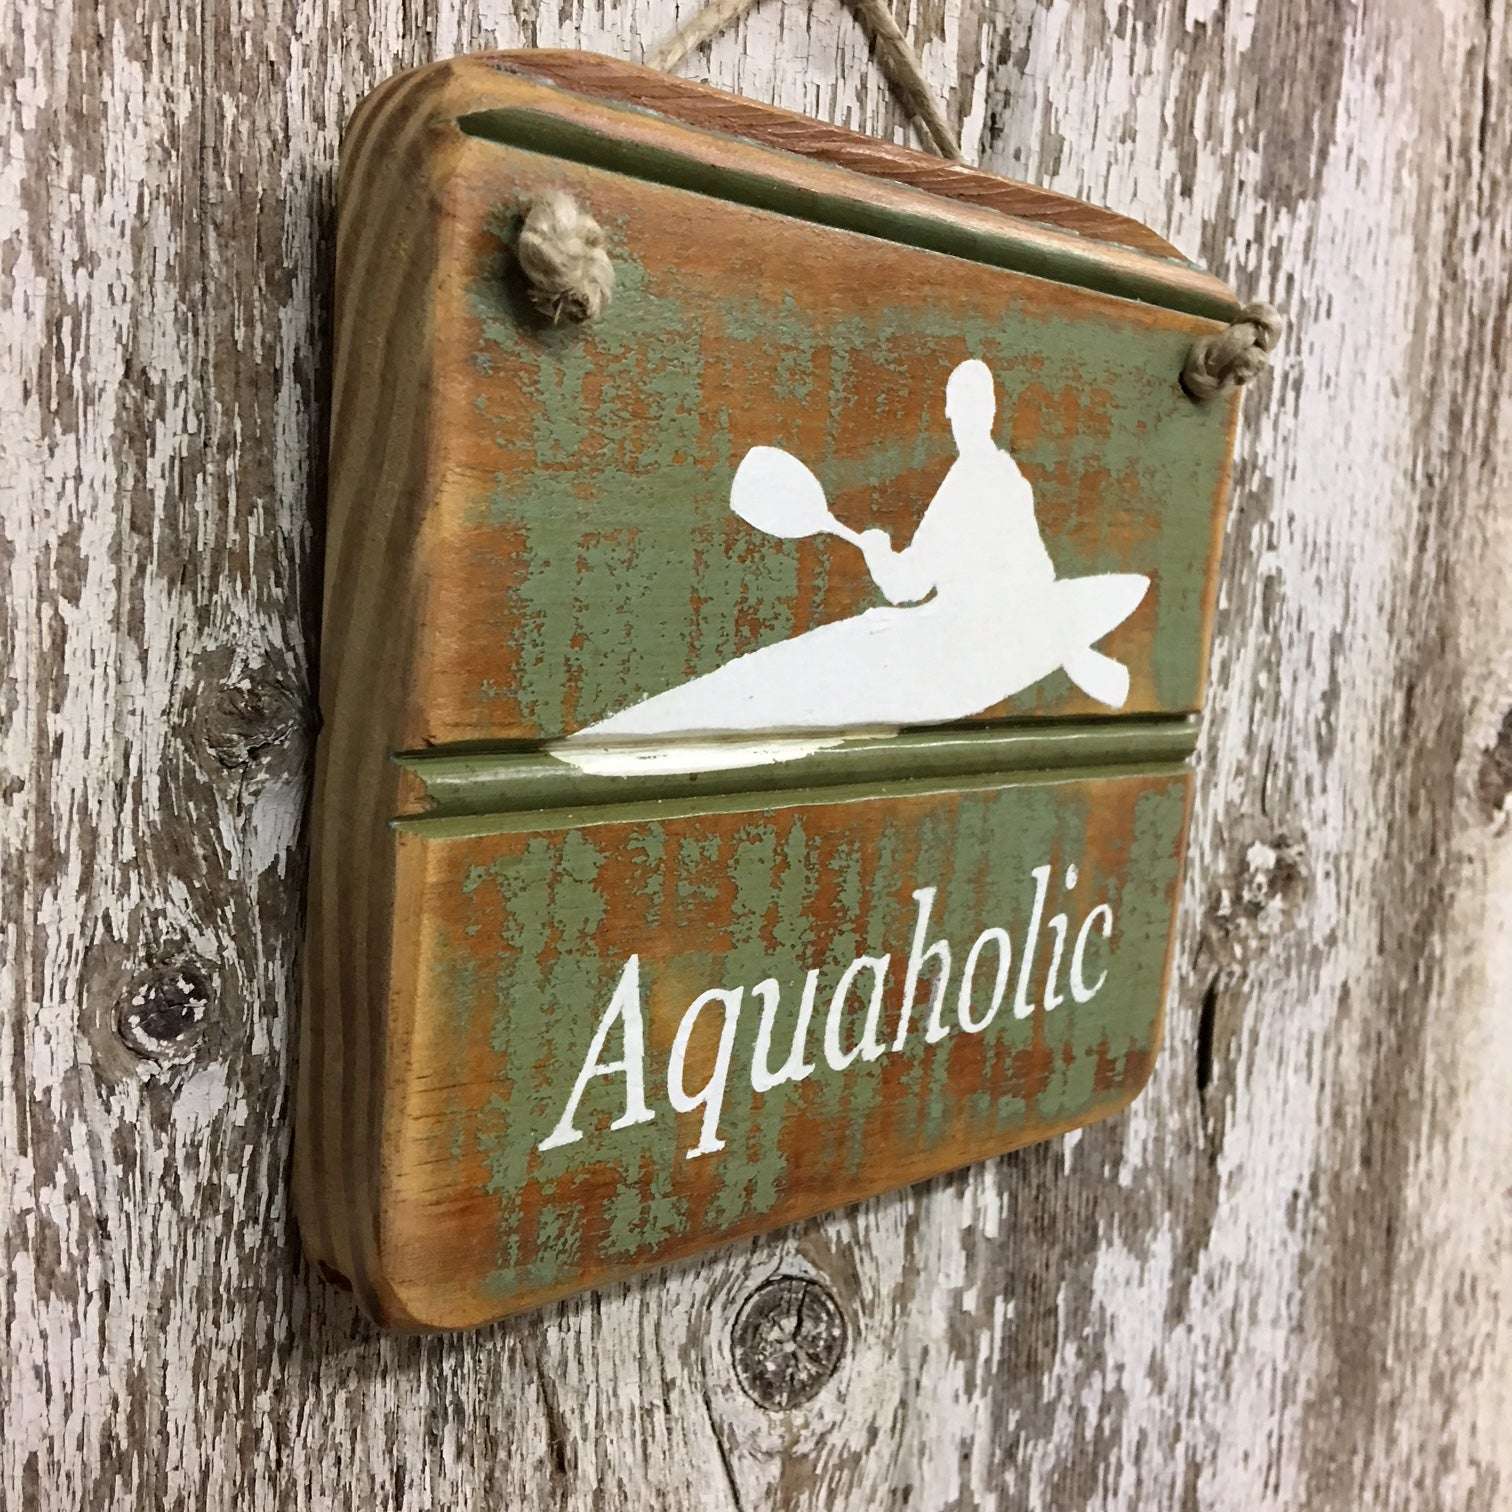 holiday gifts for paddlers kayaking gift ideas aquaholic kayak